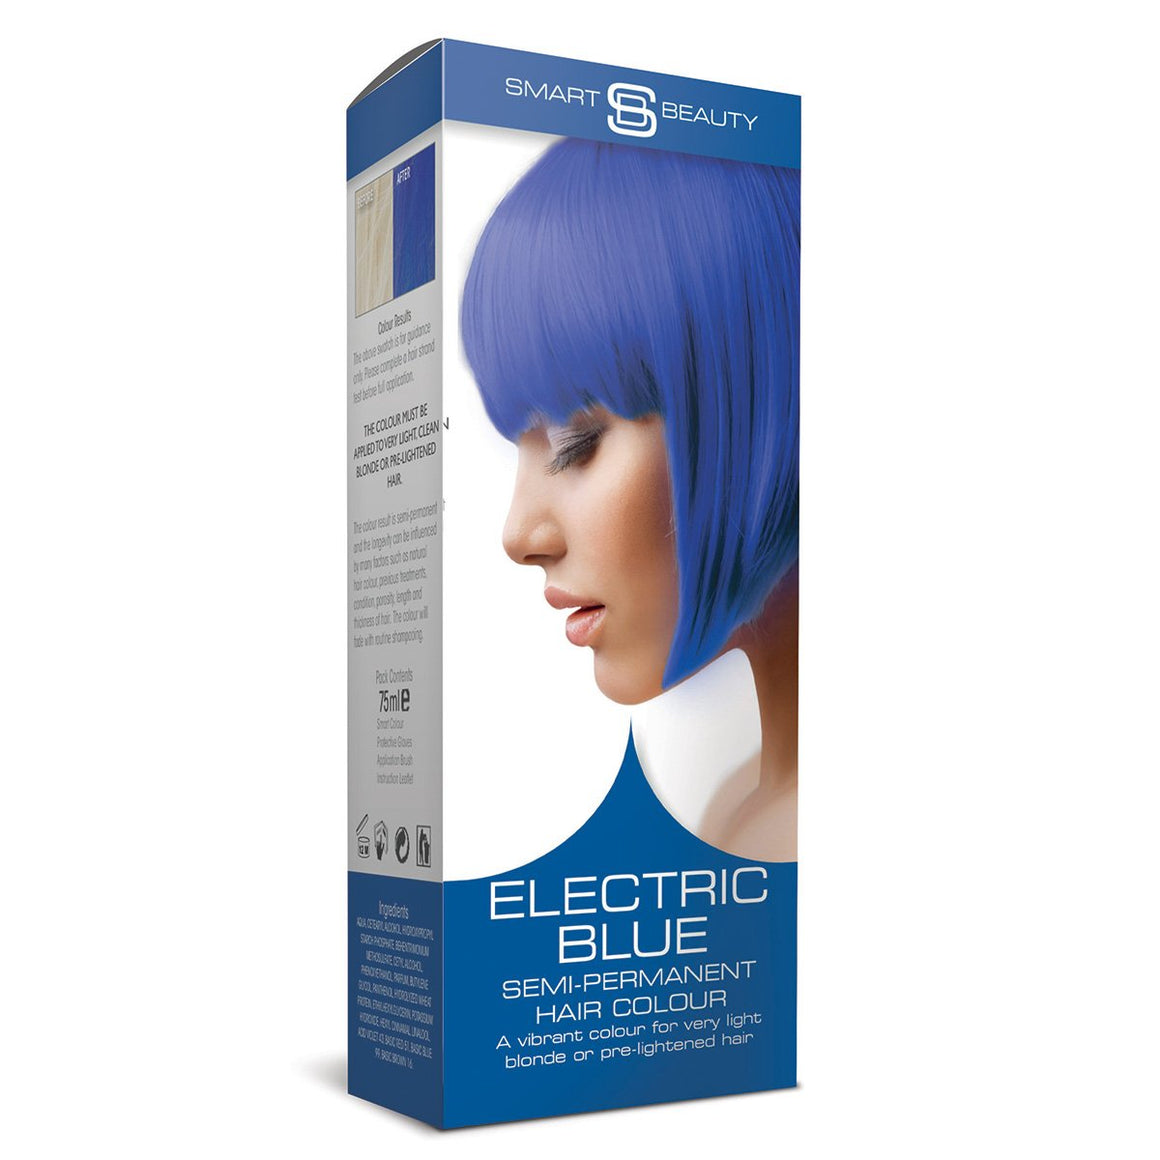 Electric Blue Semi-permanent Hair Colour